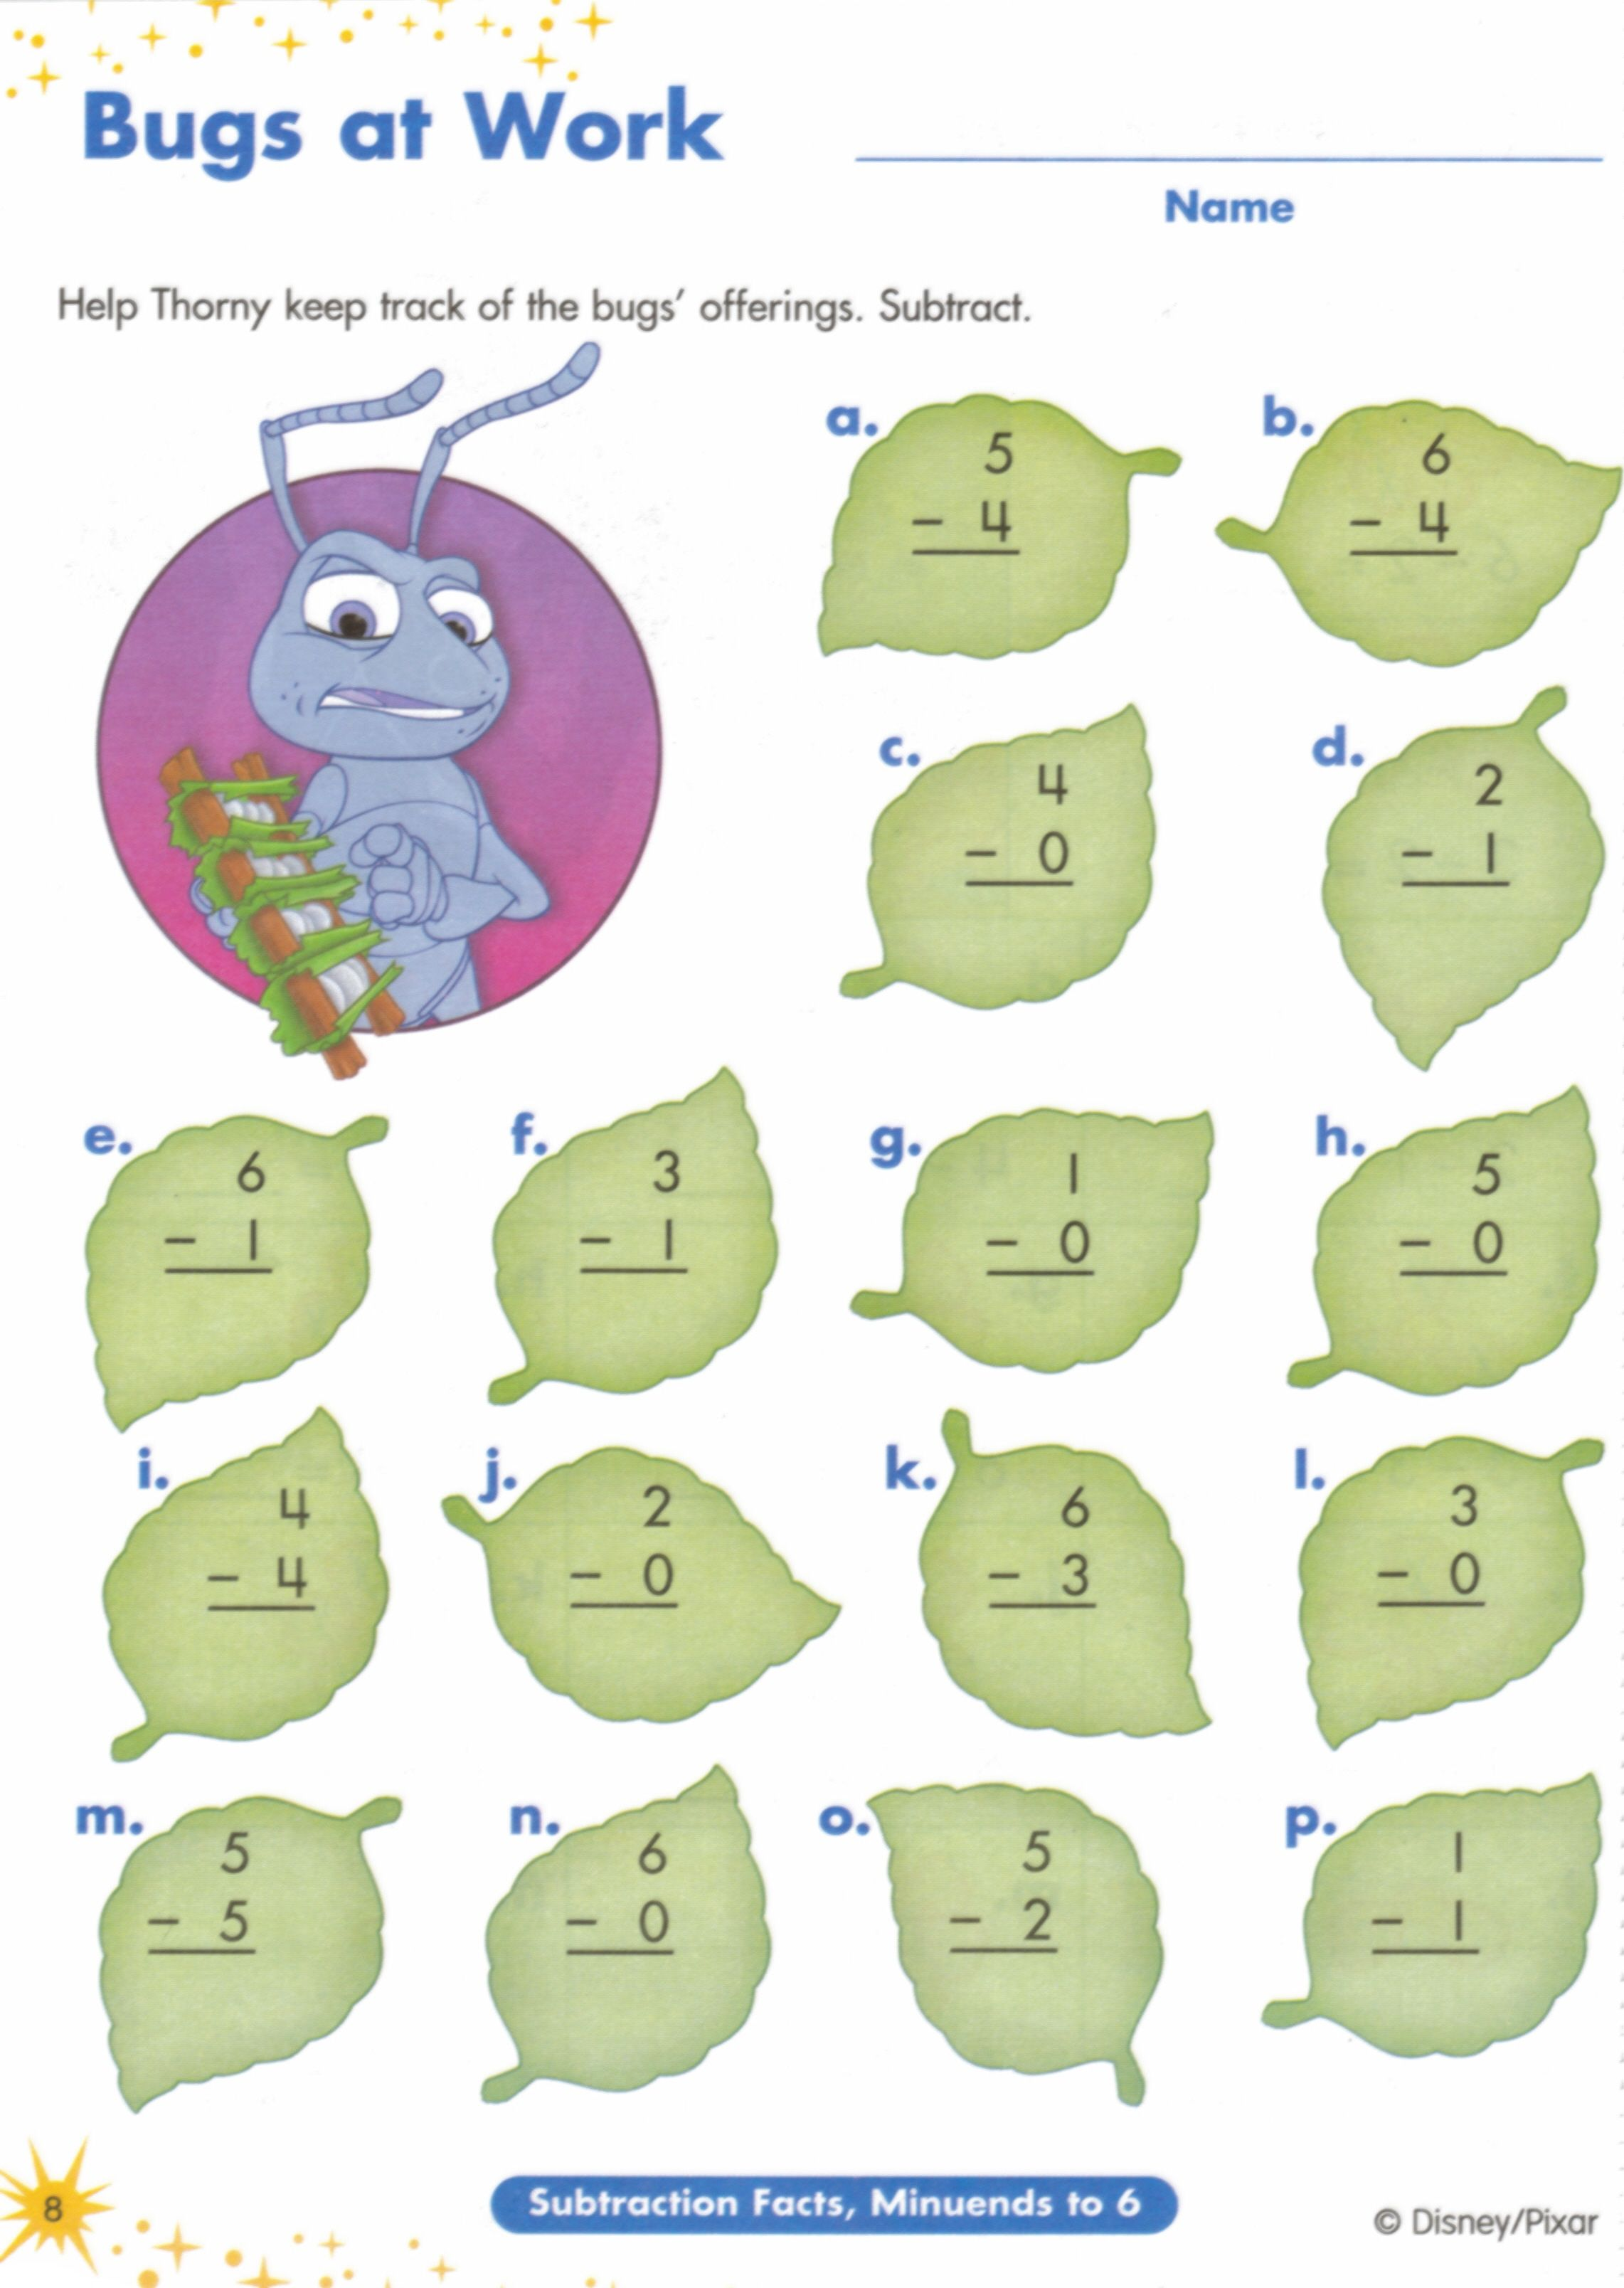 Proatmealus  Pleasing  Images About Worksheets On Pinterest  Fun Facts For Kids  With Inspiring  Images About Worksheets On Pinterest  Fun Facts For Kids Earth Day Worksheets And Jungles With Endearing Quadratic Equation Worksheets With Answers Also Worksheet Preposition In Addition Free Anti Bullying Worksheets And Symetry Worksheets As Well As Ks Maths Worksheets Additionally Antonyms Worksheets For Grade  From Pinterestcom With Proatmealus  Inspiring  Images About Worksheets On Pinterest  Fun Facts For Kids  With Endearing  Images About Worksheets On Pinterest  Fun Facts For Kids Earth Day Worksheets And Jungles And Pleasing Quadratic Equation Worksheets With Answers Also Worksheet Preposition In Addition Free Anti Bullying Worksheets From Pinterestcom